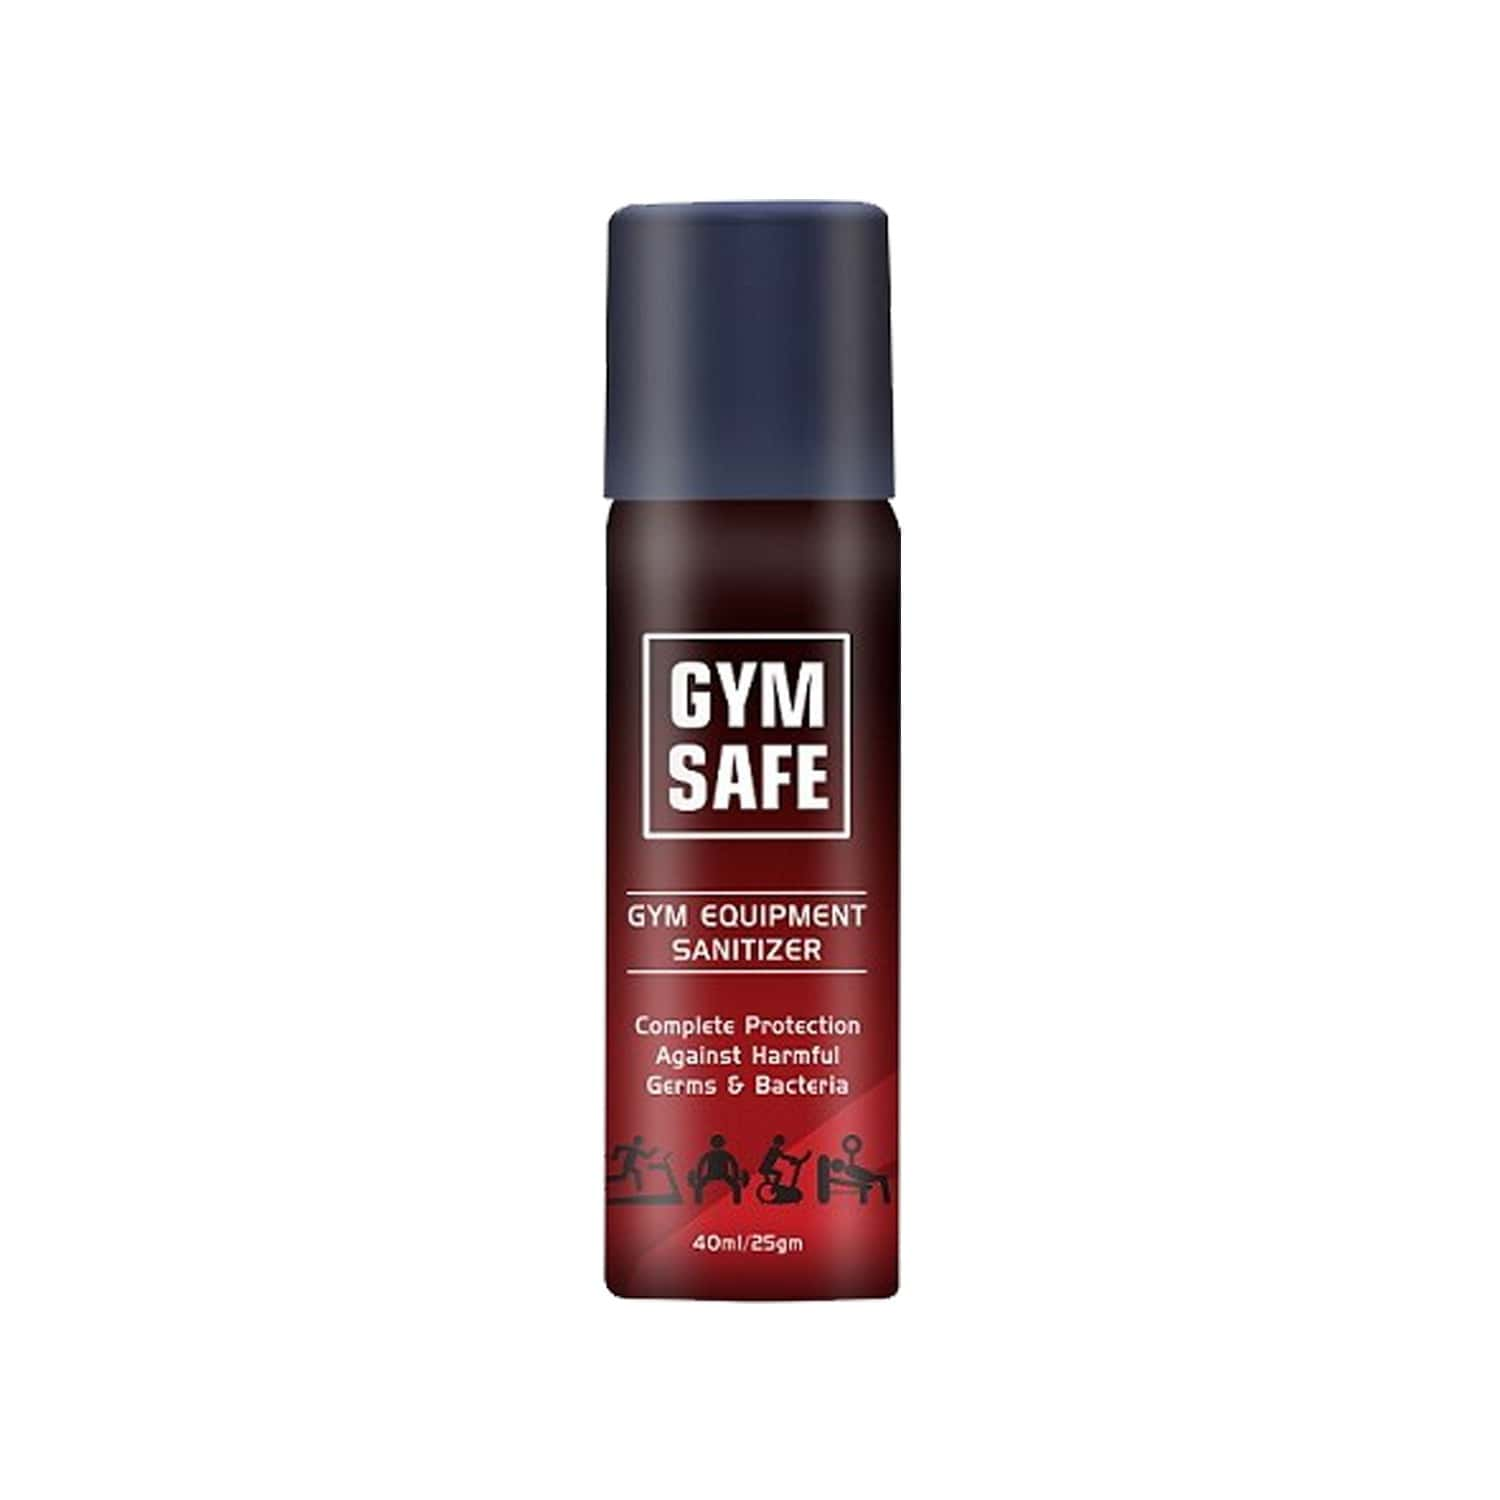 Gymsafe-gym Equiment Sanitizer Spary 40 Ml